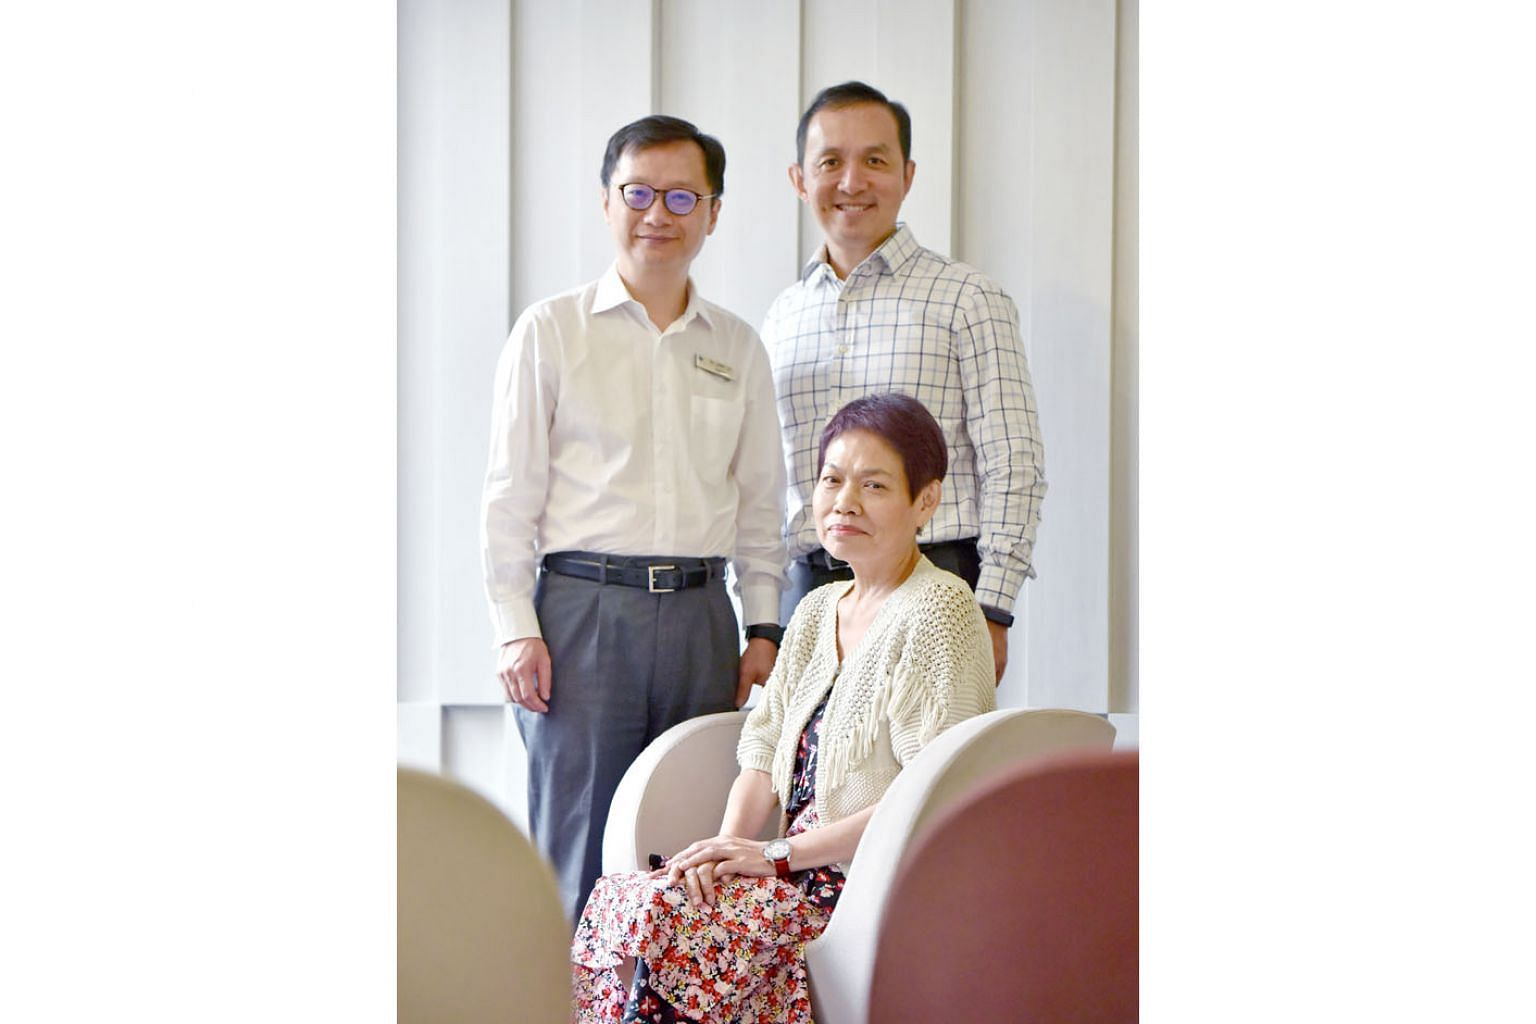 Madam Cindy Chew, one of the trial's participants, with Professor Jimmy So (left), head of the National University Hospital's division of general surgery (upper gastrointestinal surgery), and Dr Yong Wei Peng, senior consultant in the National Univer